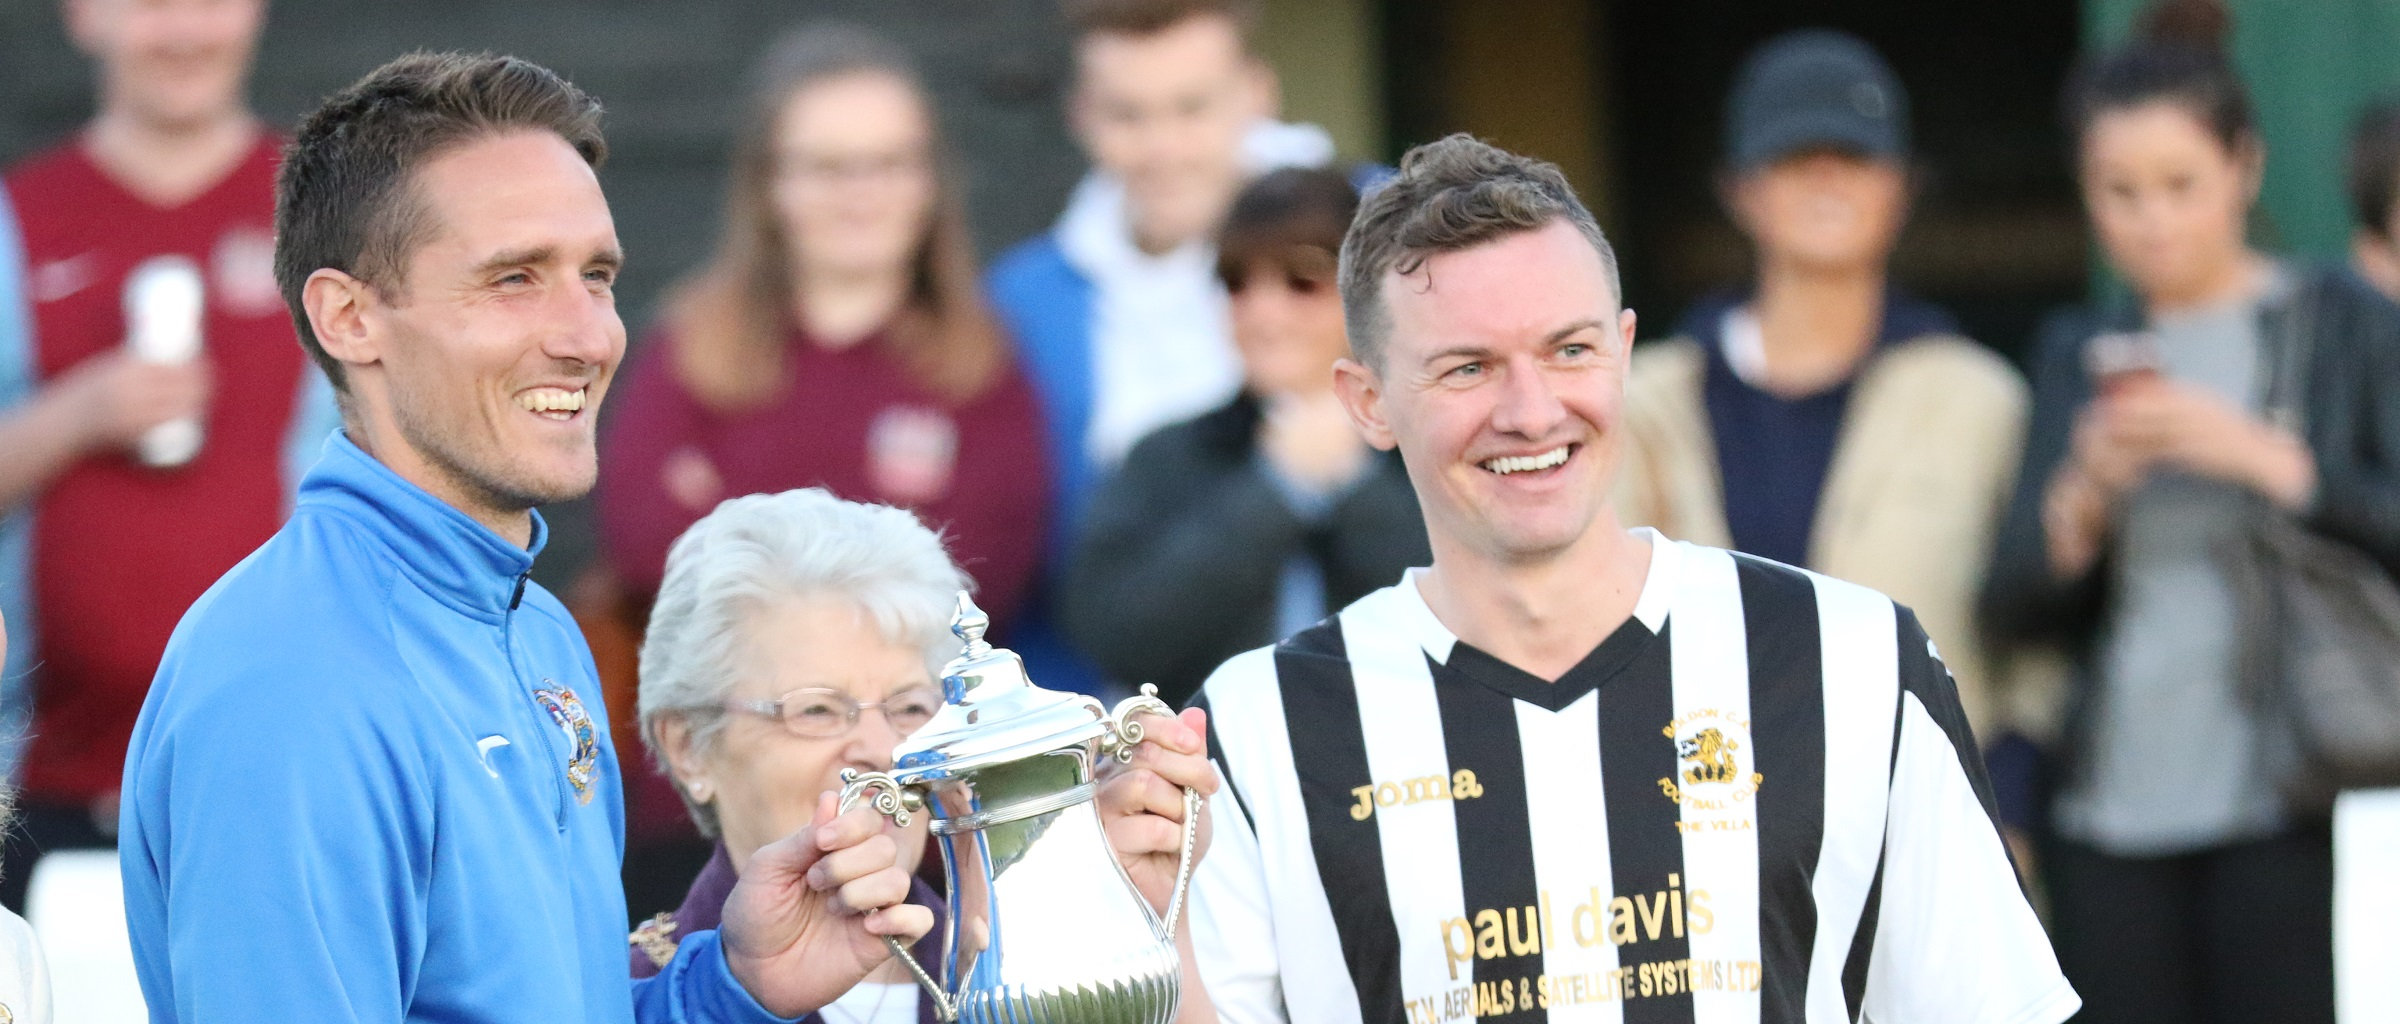 Mariners to take on Boldon CA for Sam Bartram Cup